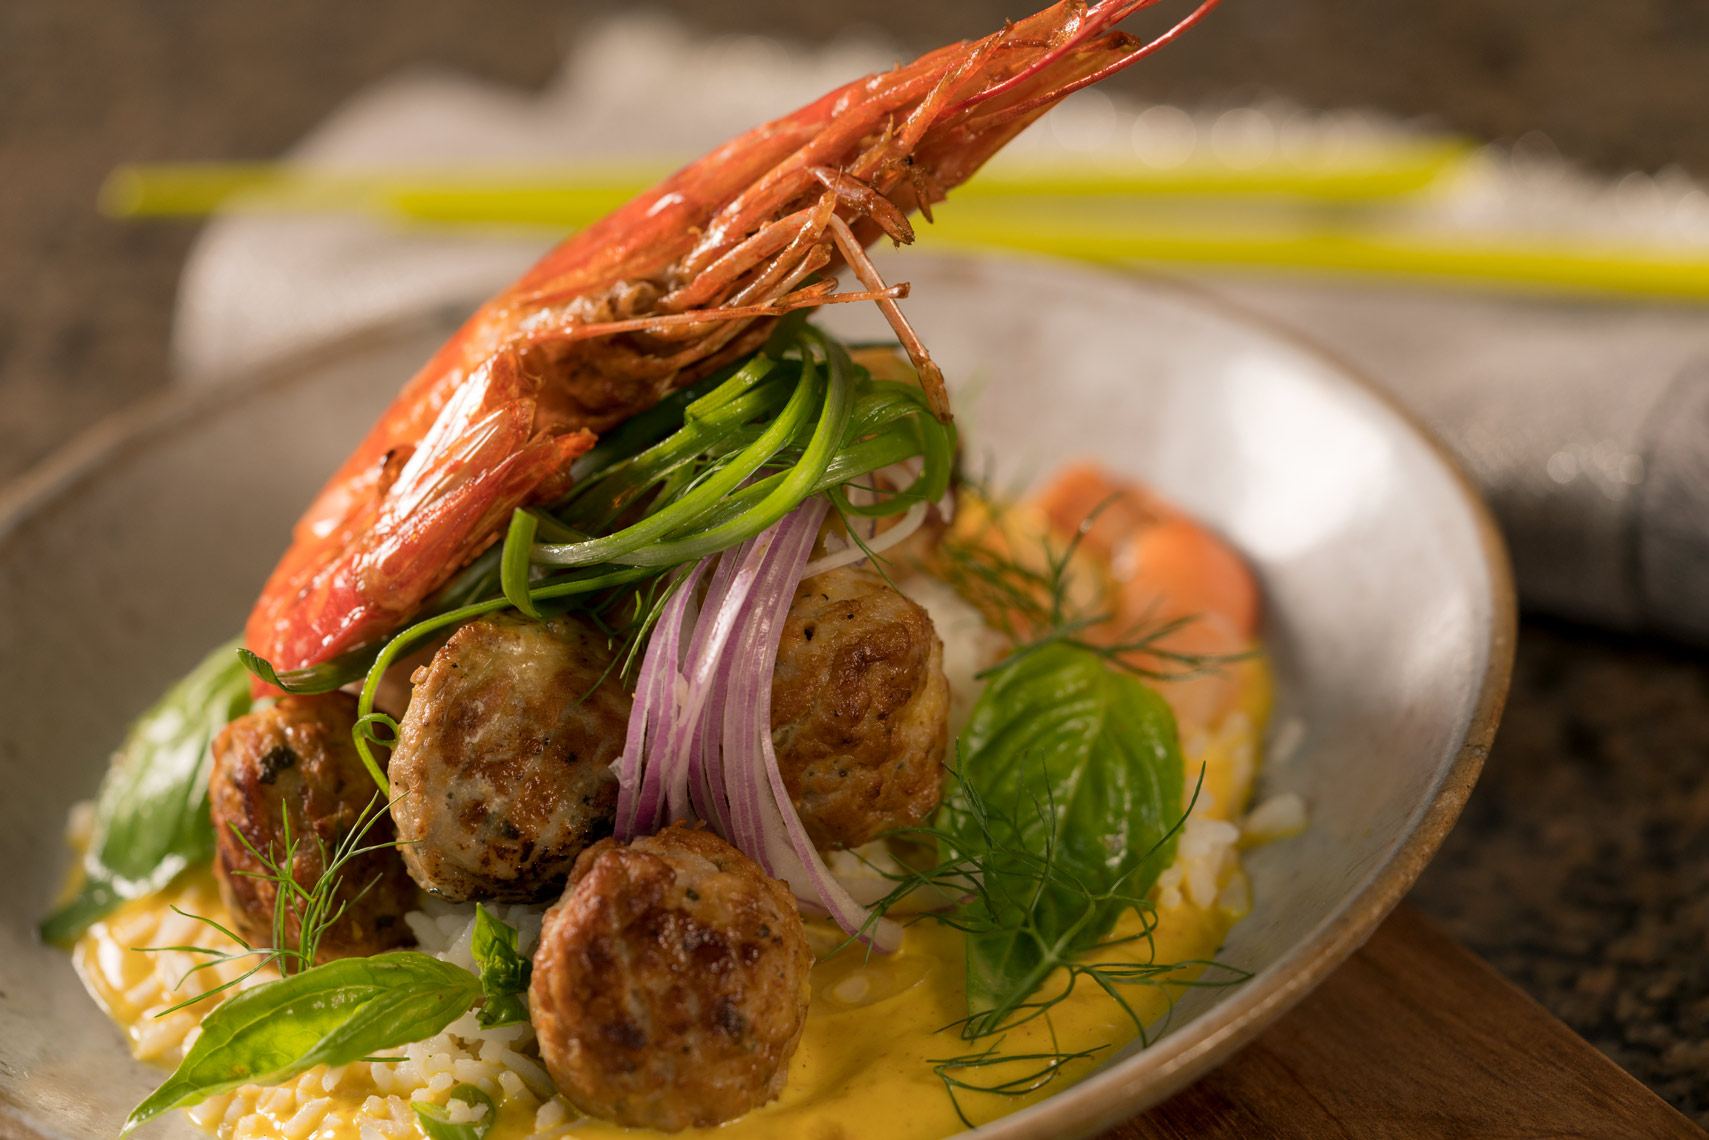 Meatballs and whole prawns with rice garnished with onions and basil in a rustic bowl  on wood en surface Fantich studio food photography.